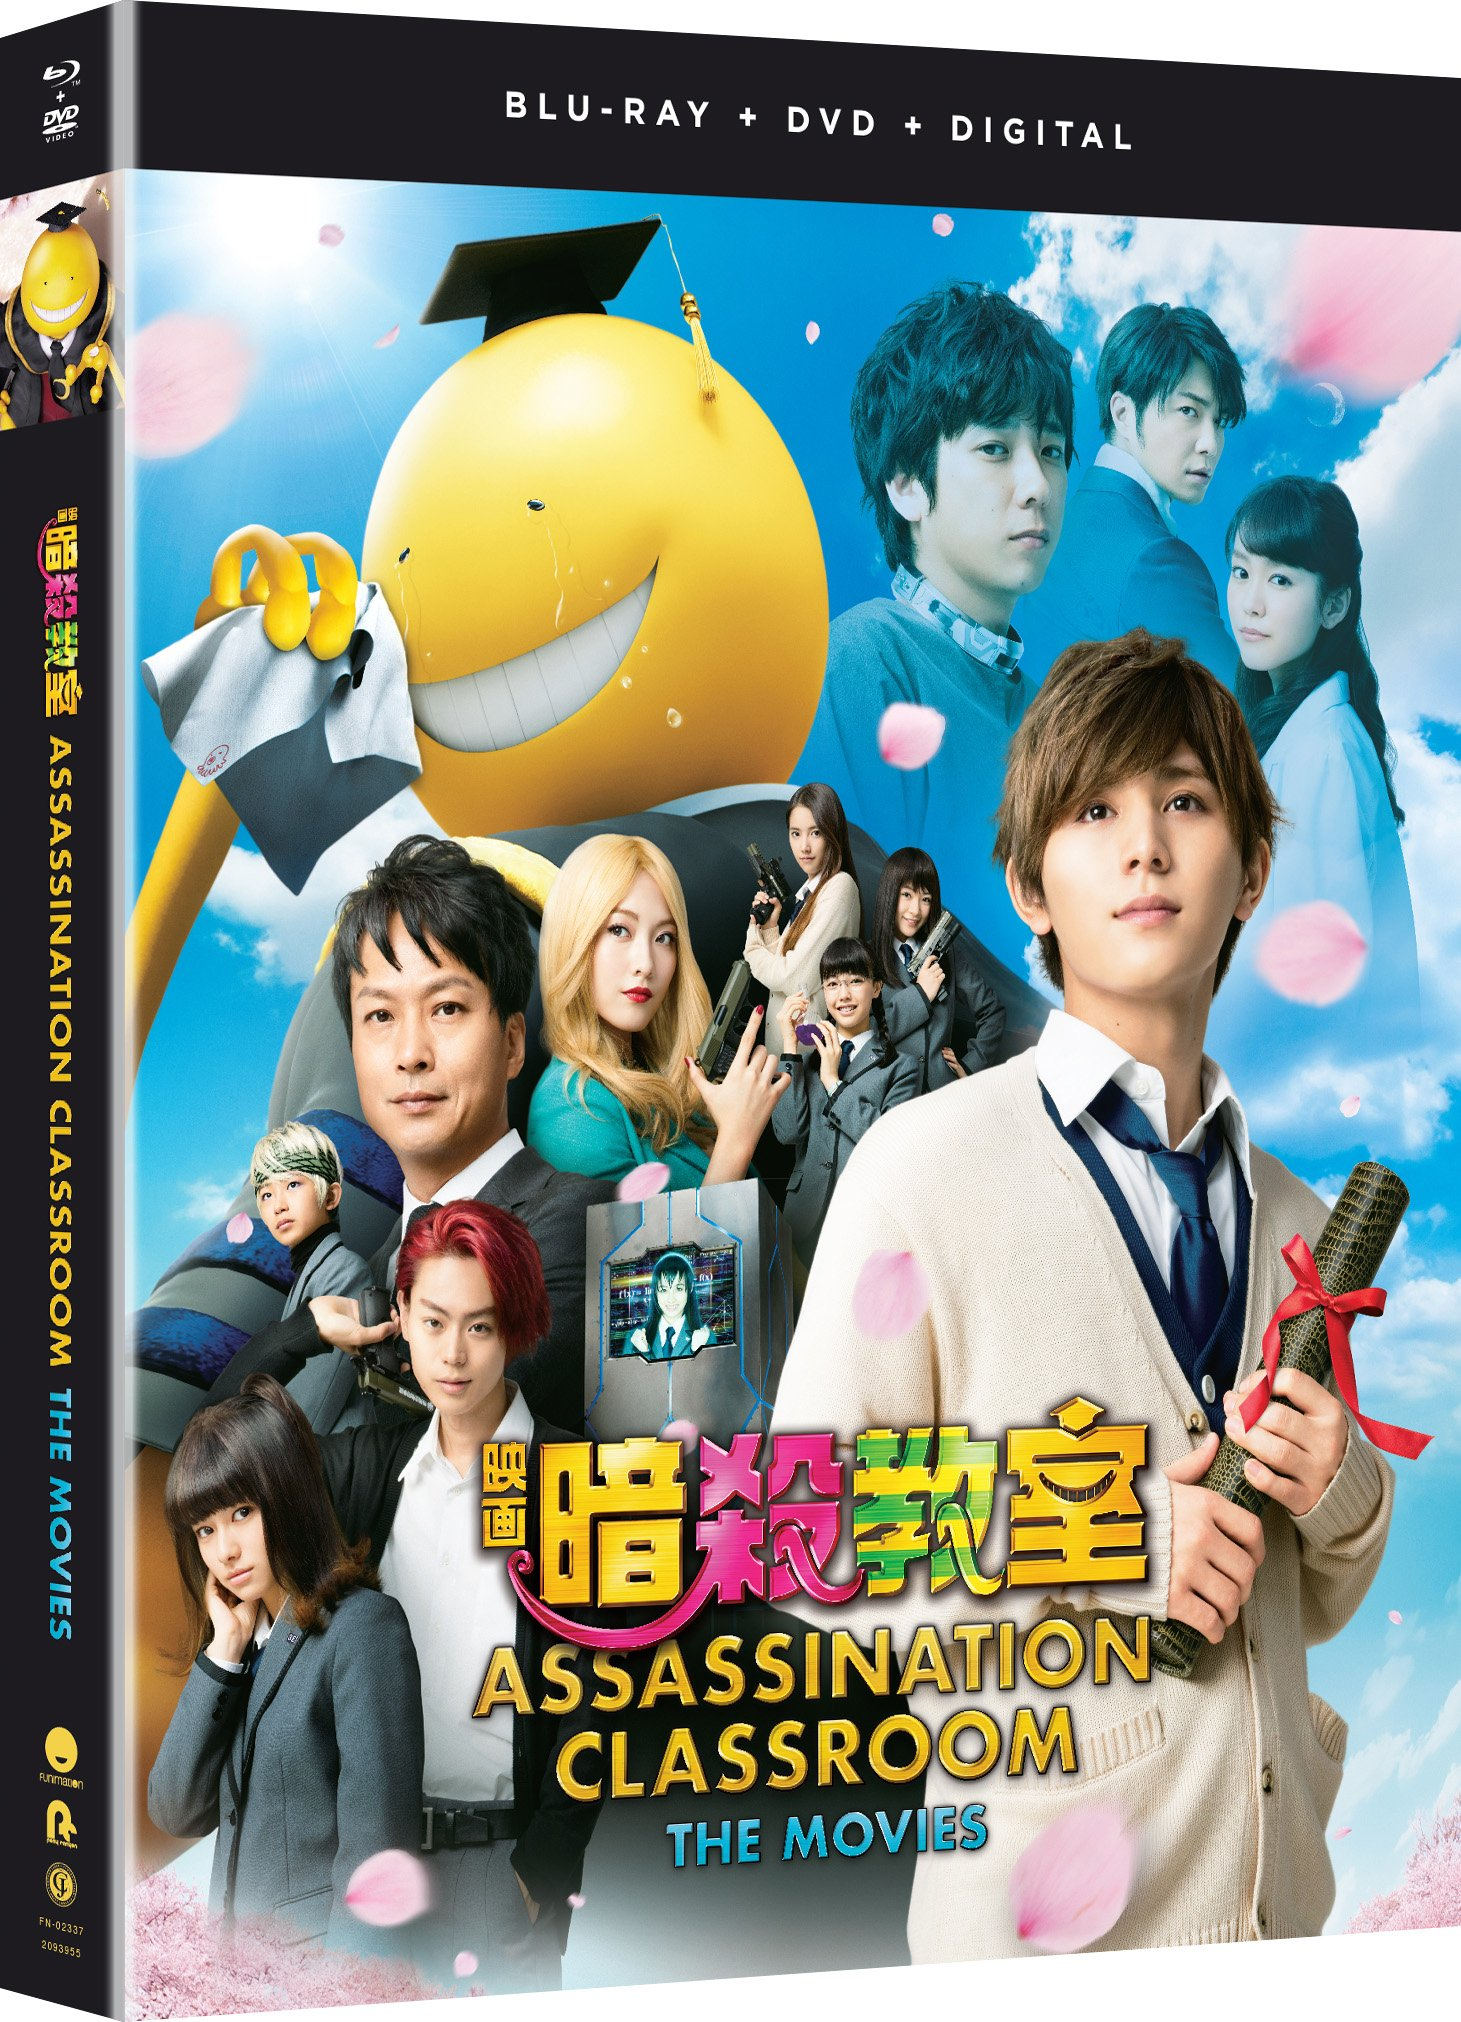 Blu-ray : Assassination Classroom: The Movies (With DVD, Boxed Set, Subtitled, Snap Case, Slipsleeve Packaging)